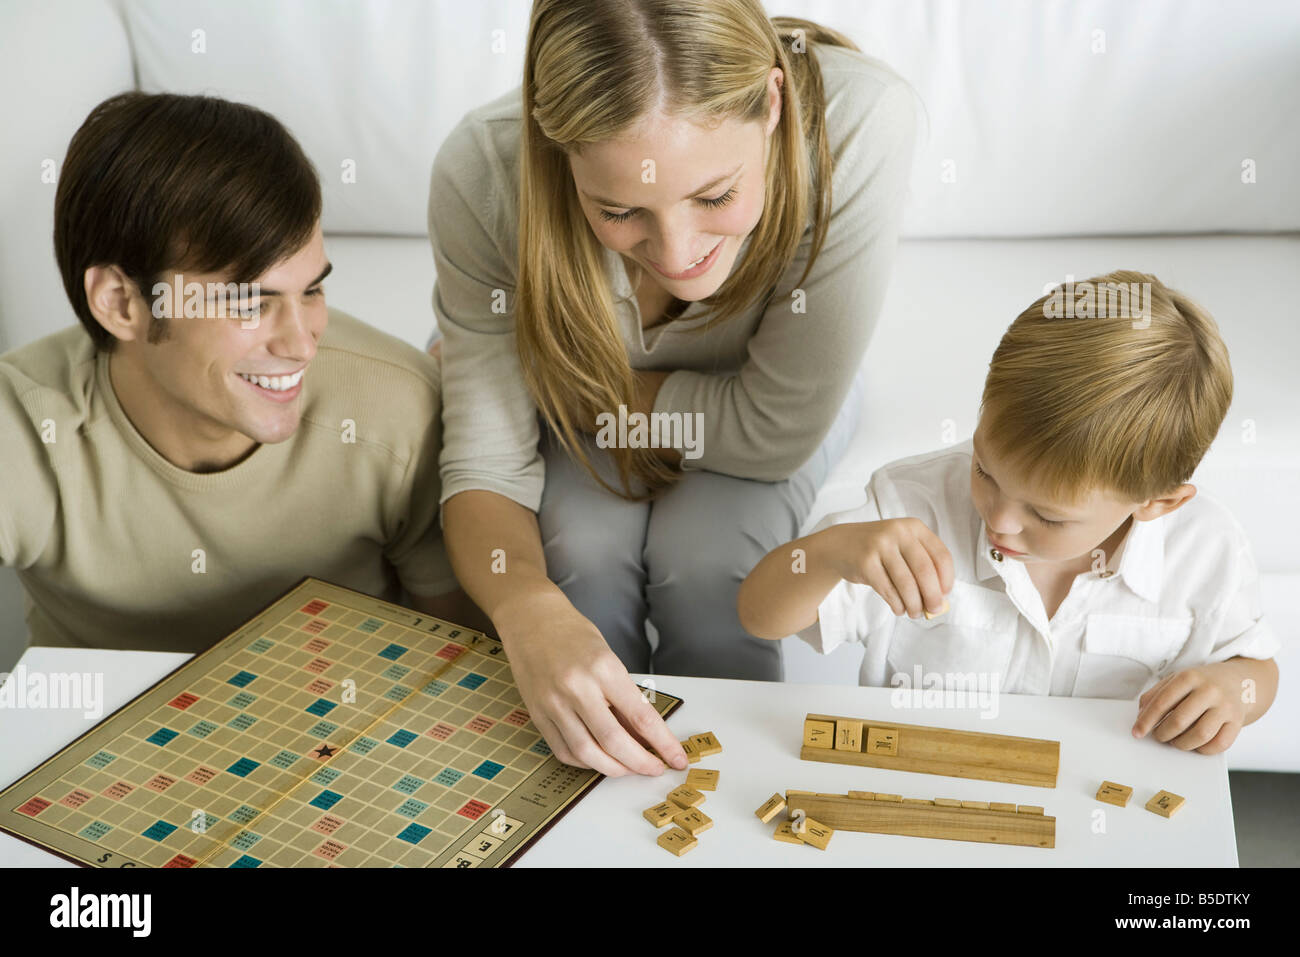 Family playing board game together, mother arranges game pieces - Stock Image